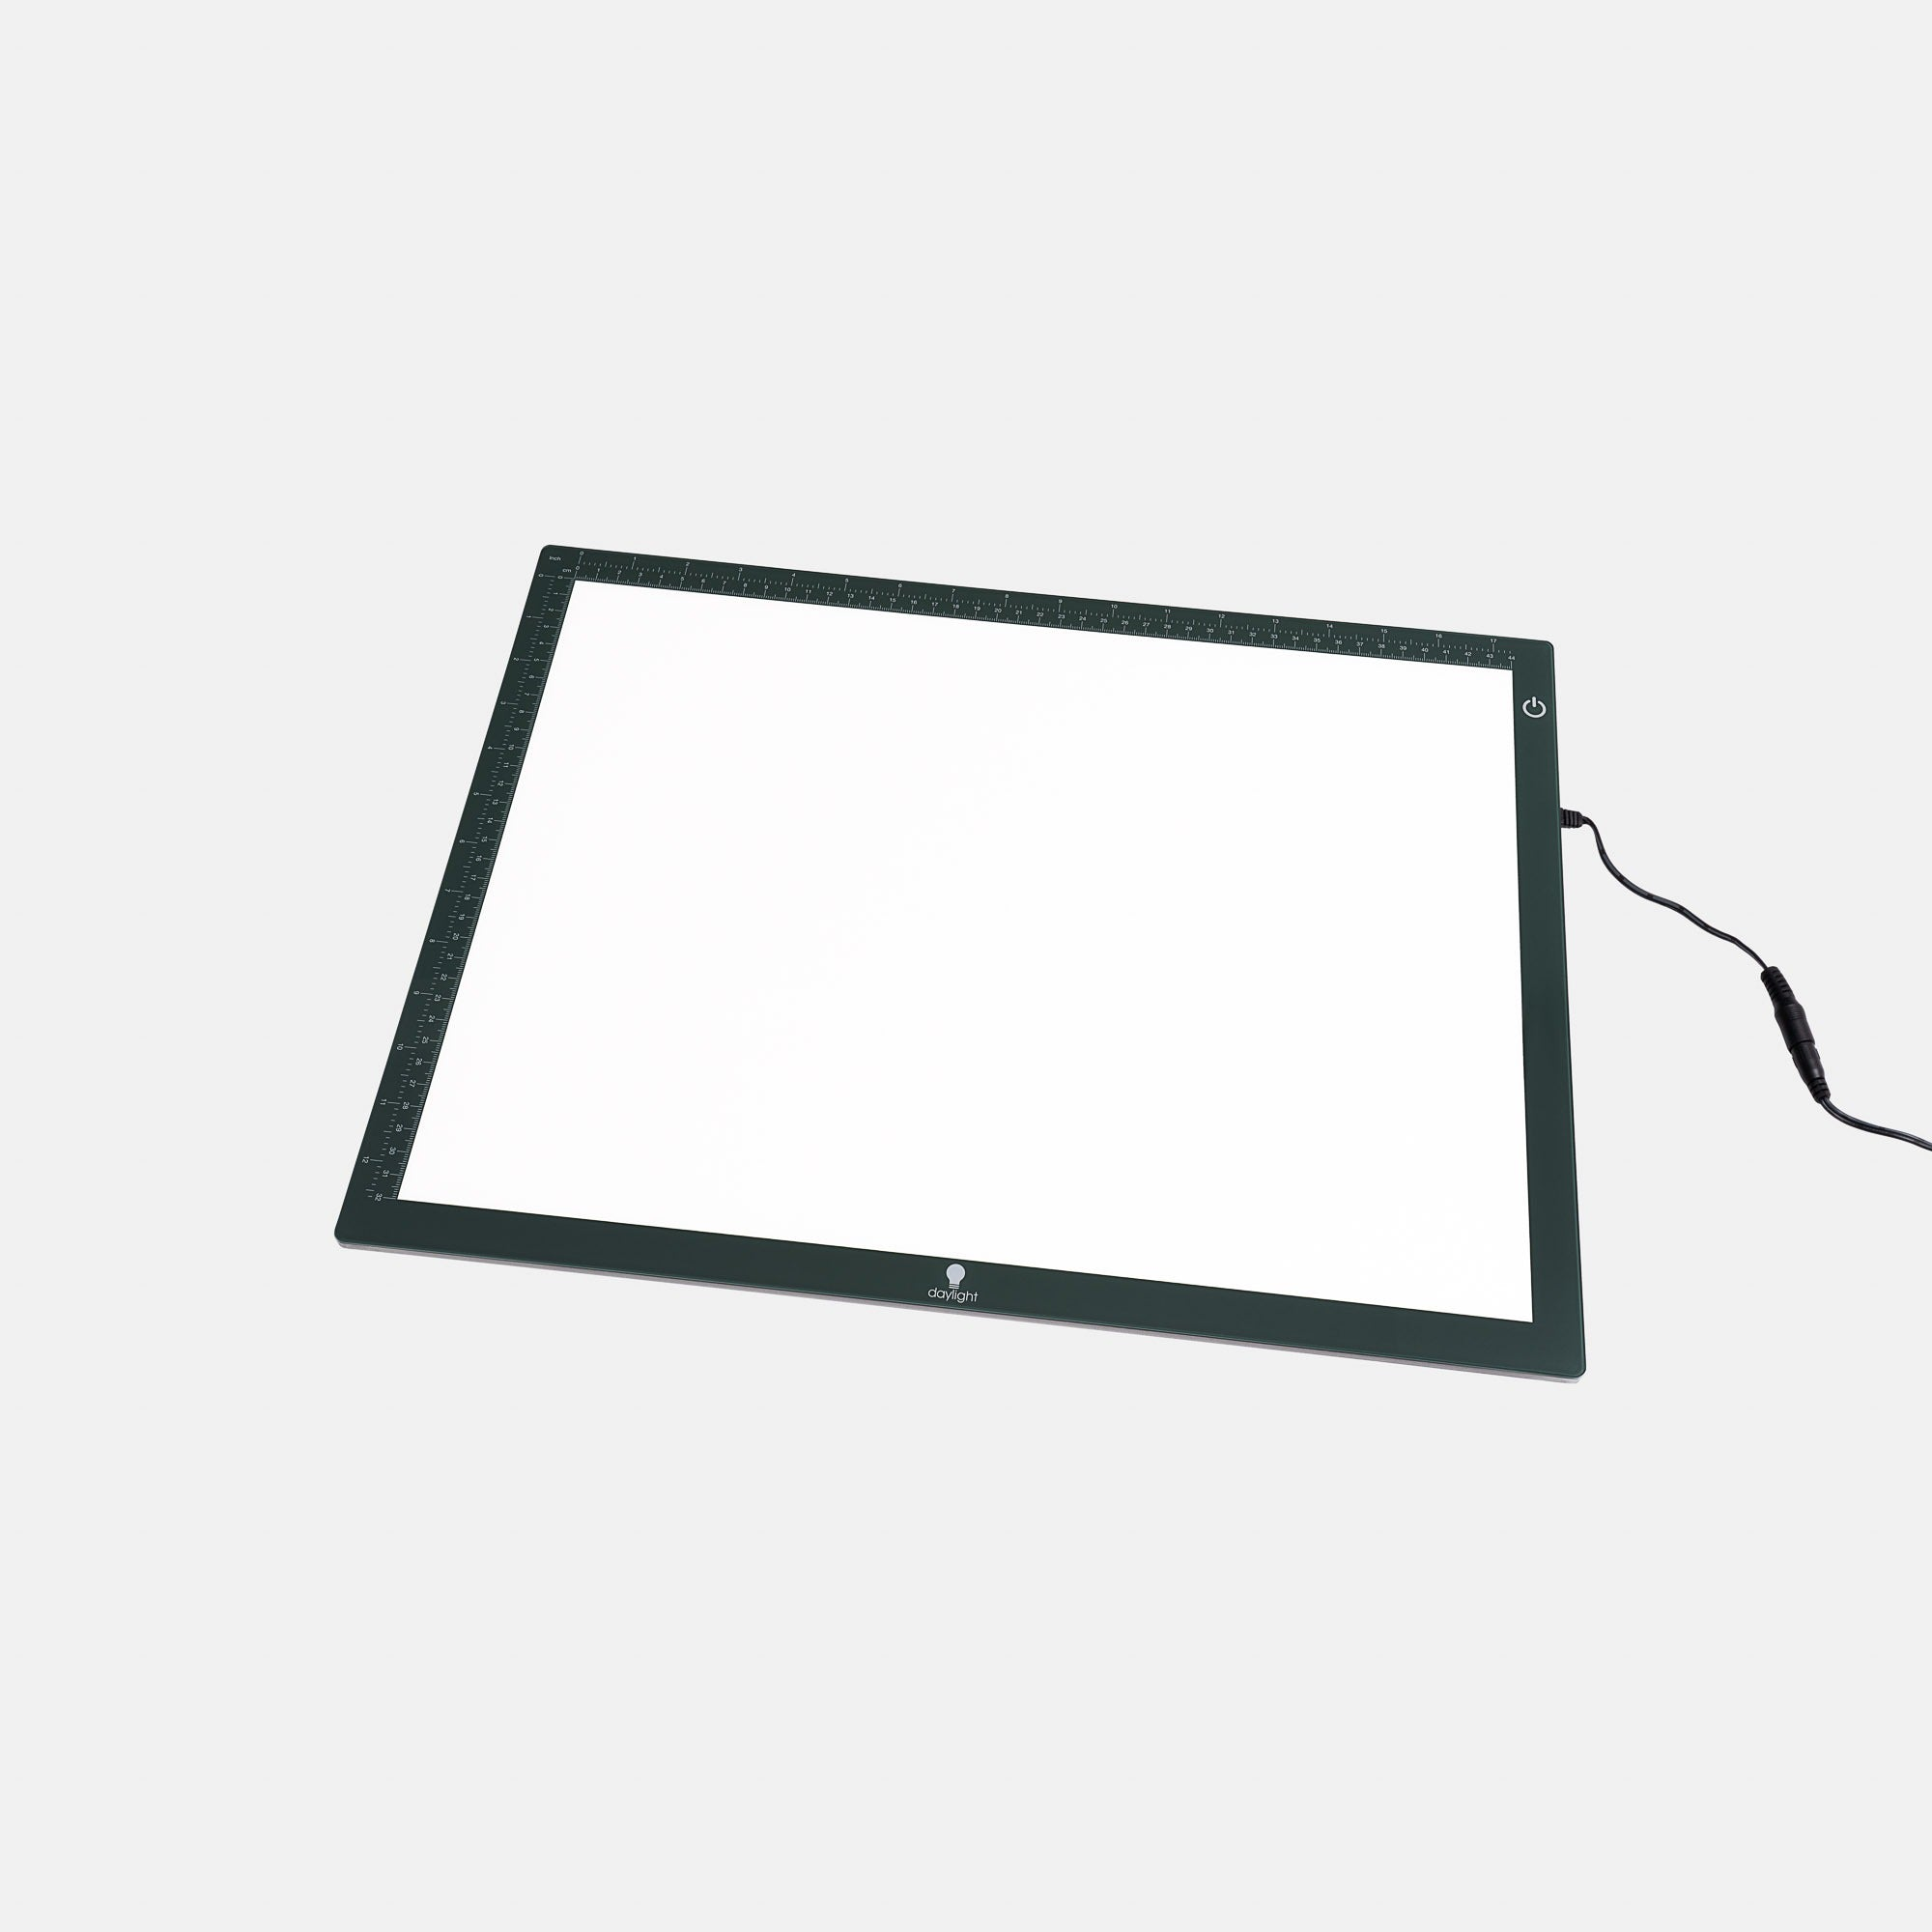 Daylight Wafer 2 Lightbox - A3 Size